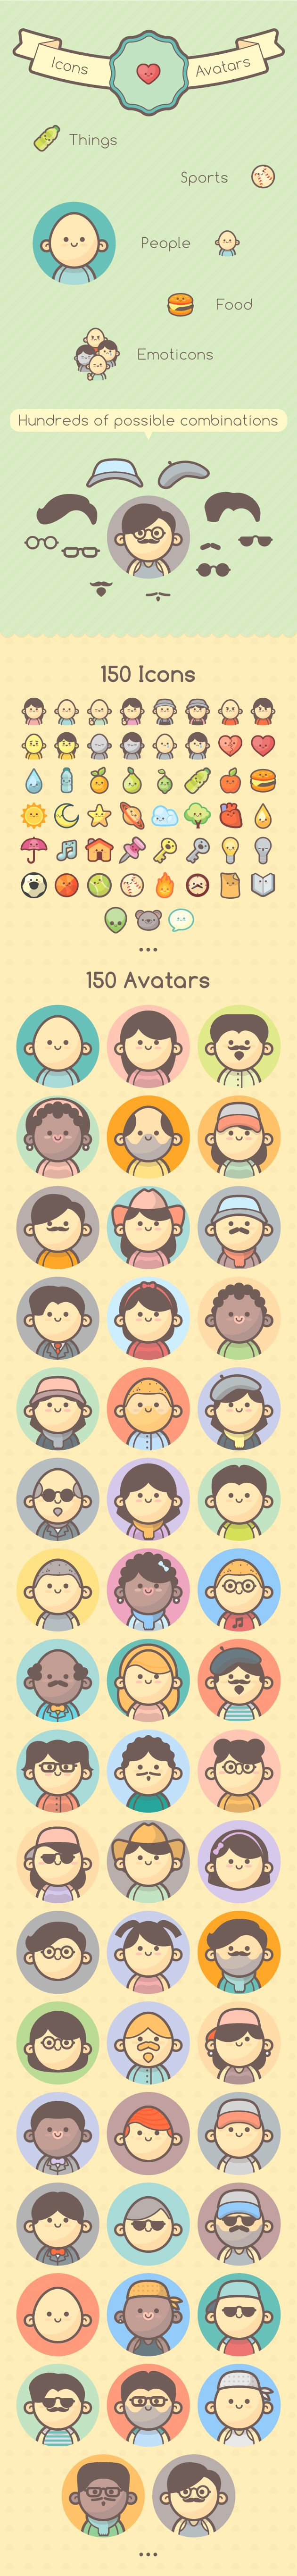 300 Cute Icons and Avatars for Kids and Girls (kawaii Style)